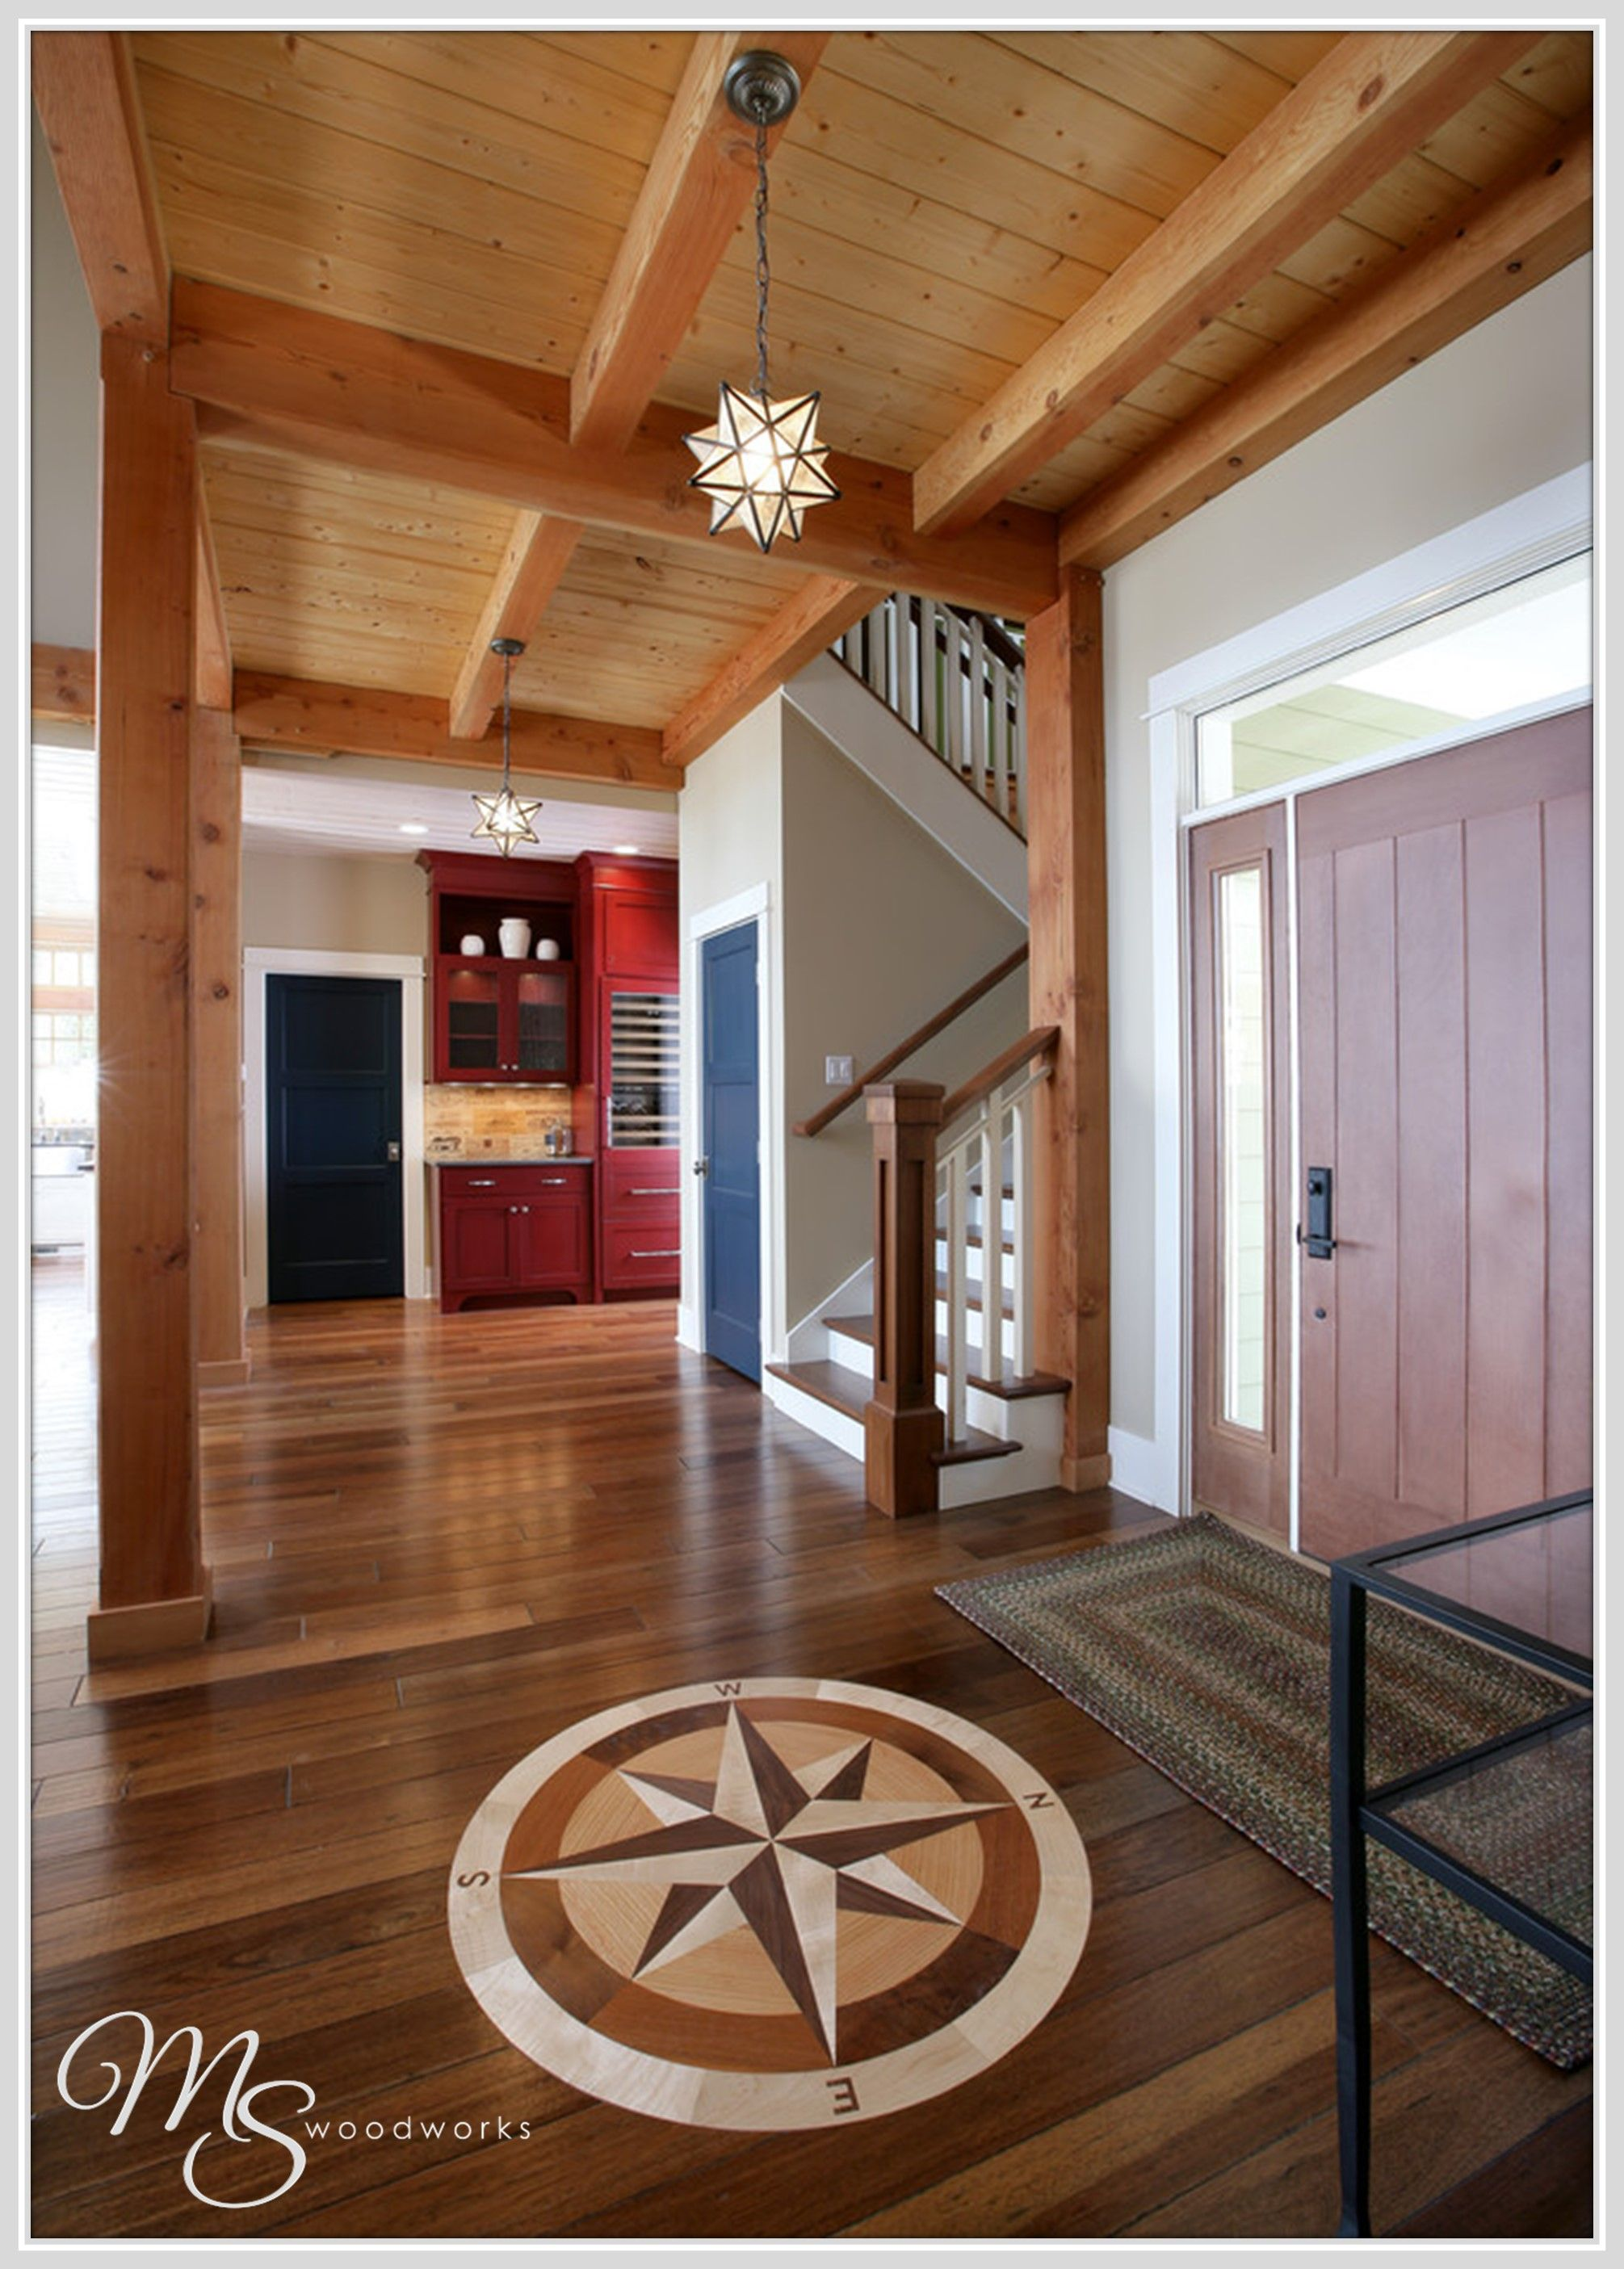 Trying To Remodel A Little Why Not Remodel A Lot With Custom Wood Flooring Ceilings Doors And Or Cabinets We Can House Flooring Floor Medallion Flooring